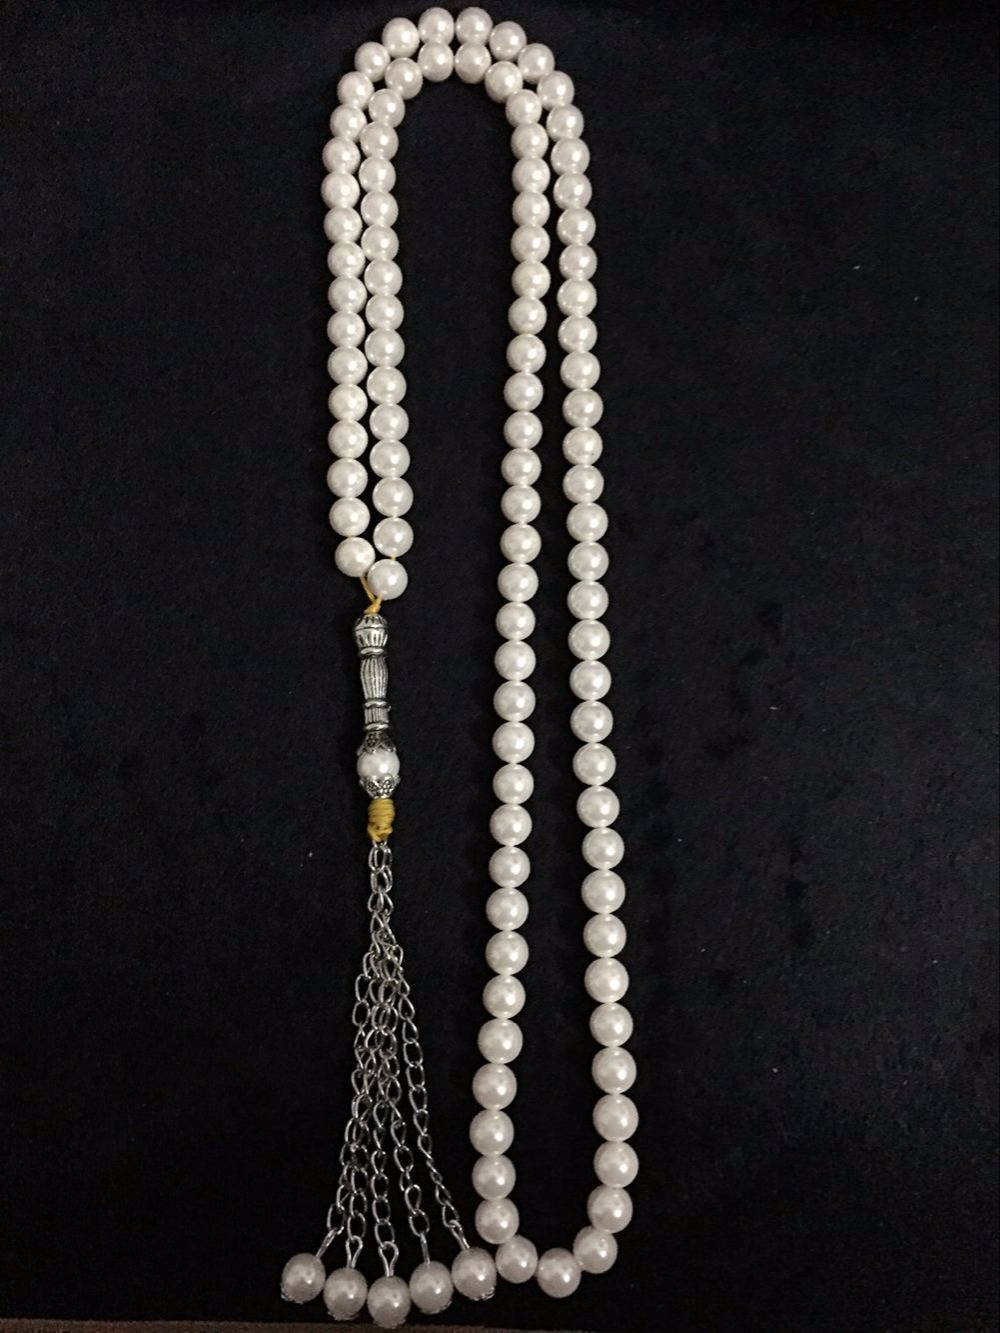 99 Beads Pearl Shell Material 8mm Size Alloy Accessories Prayer beads Islamic Muslim Tasbih Allah Misbaha Sibha h 265 4ch cctv system 5mp 3mp 2mp metal outdoor ip camera 4ch 1080p poe nvr kit alarm email night vision app pc remote